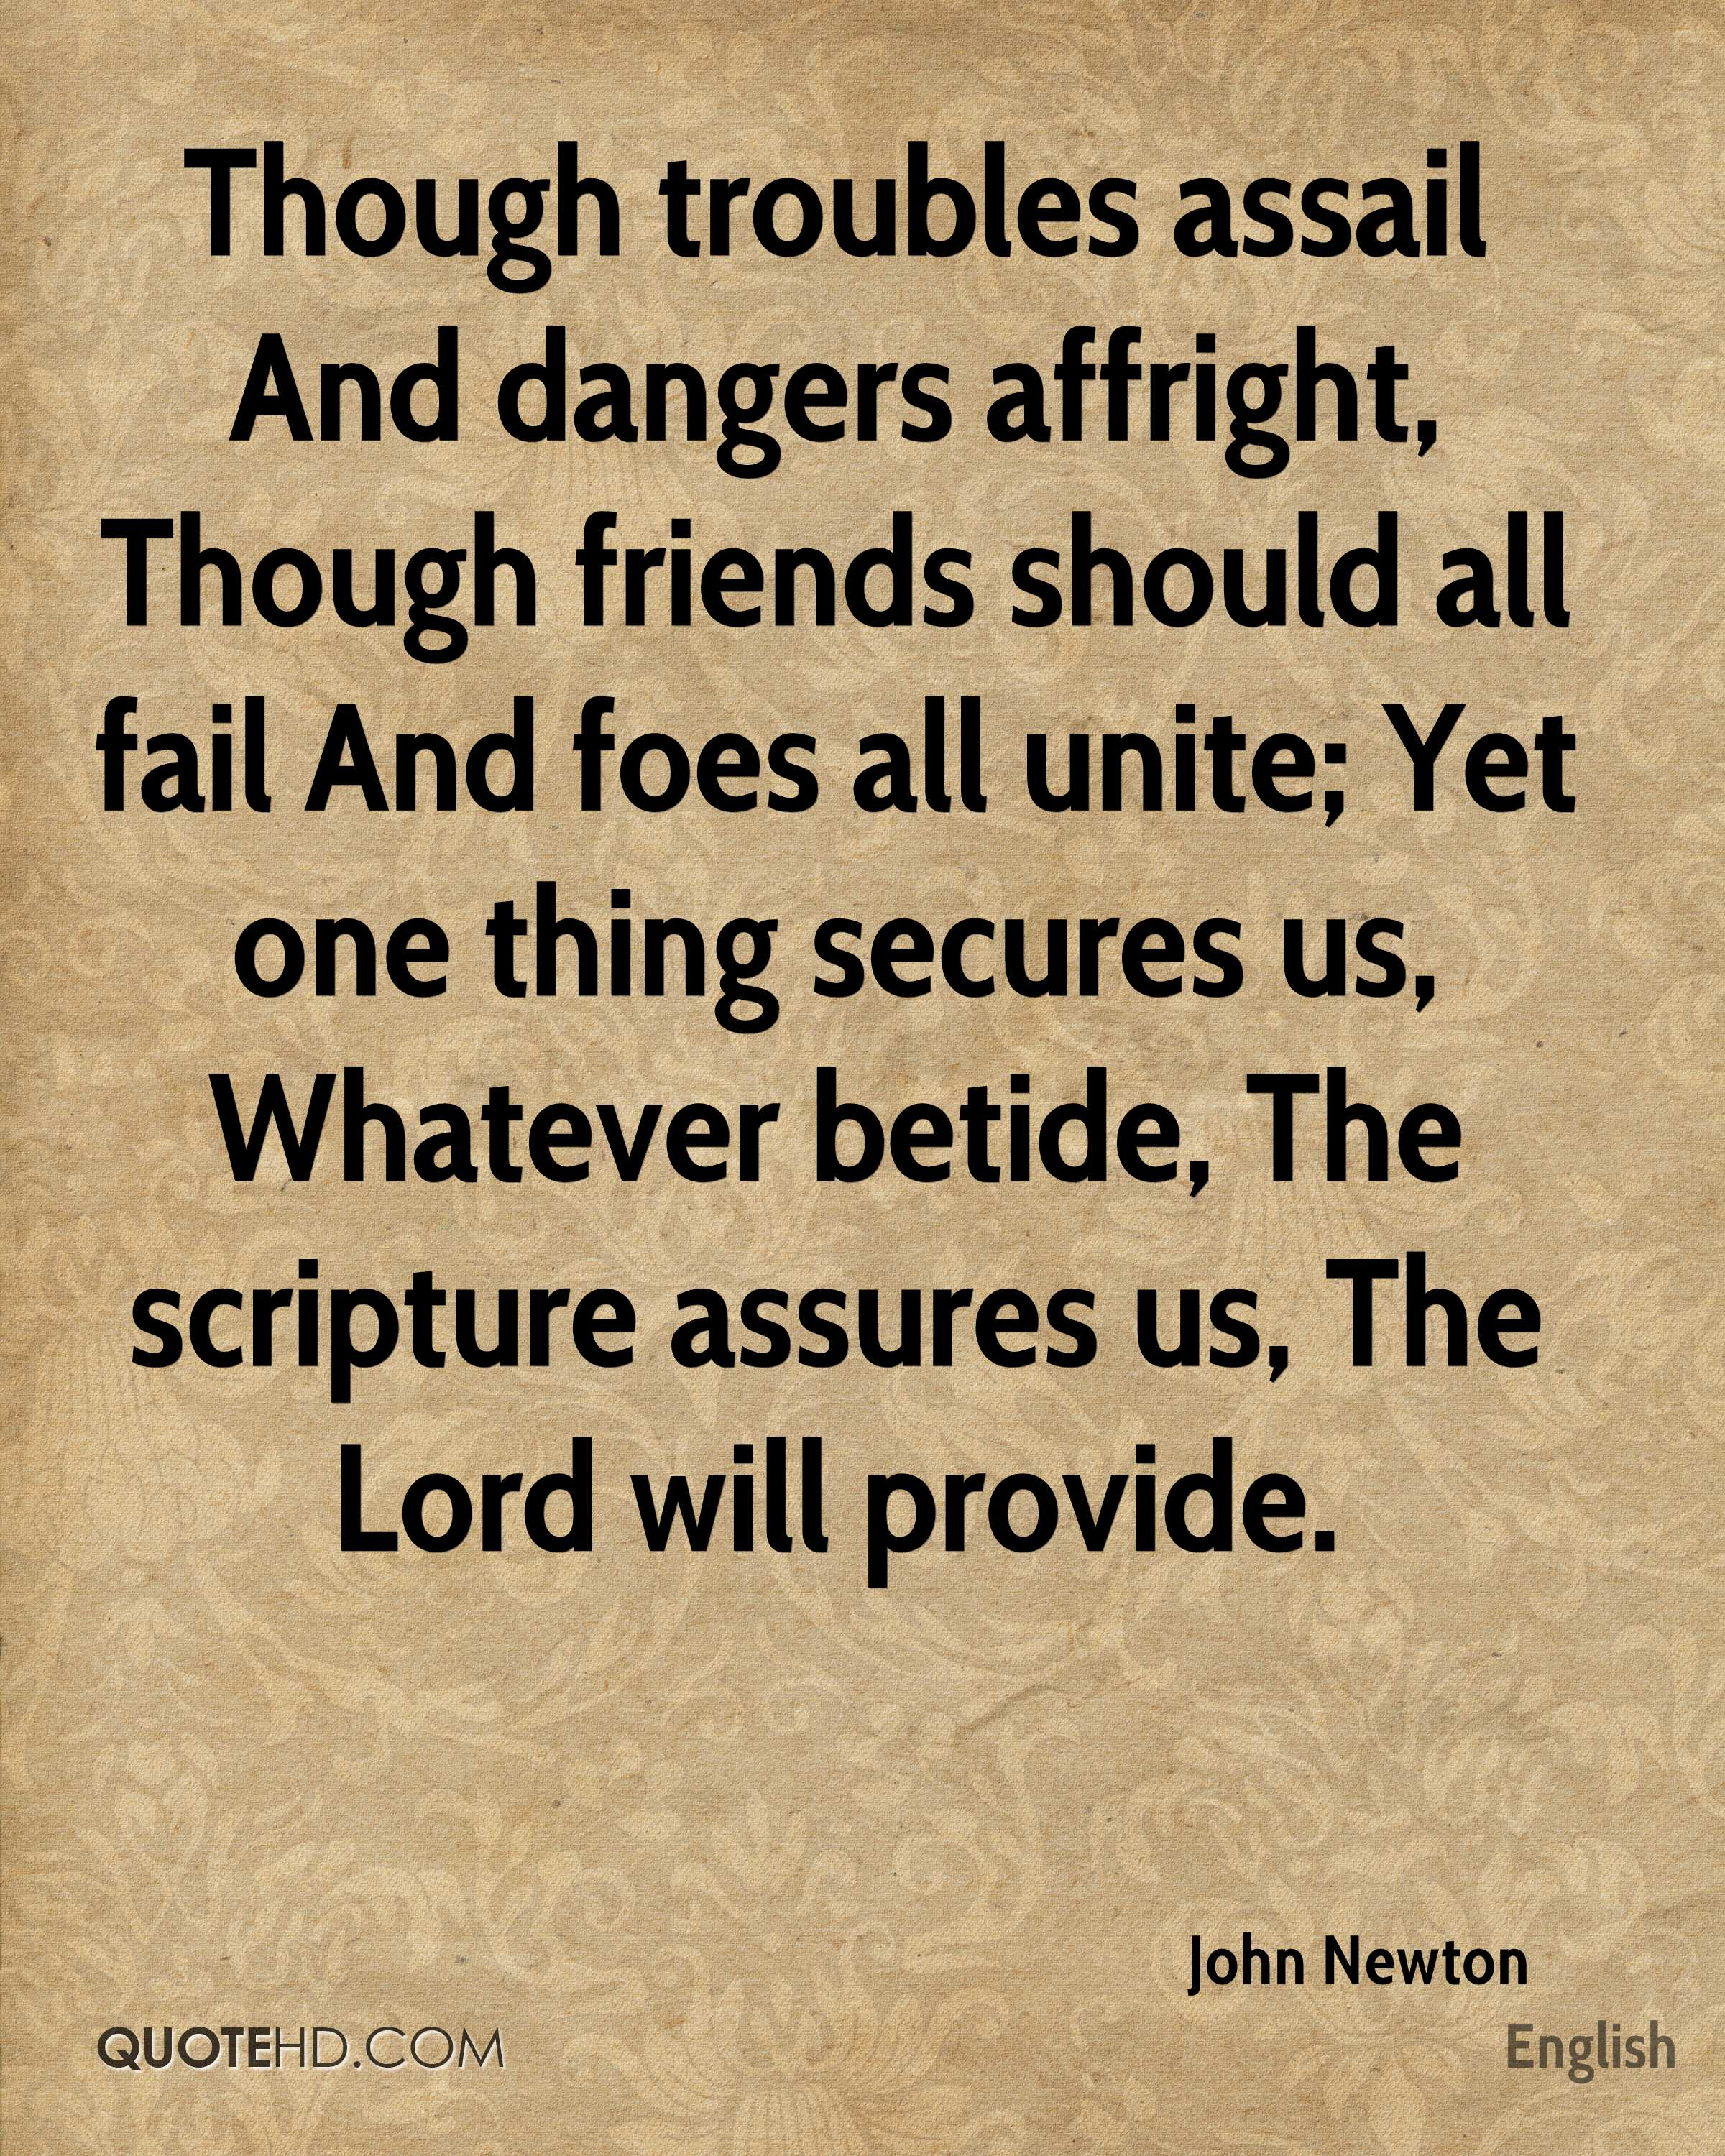 Though troubles assail And dangers affright, Though friends should all fail And foes all unite; Yet one thing secures us, Whatever betide, The scripture assures us, The Lord will provide.